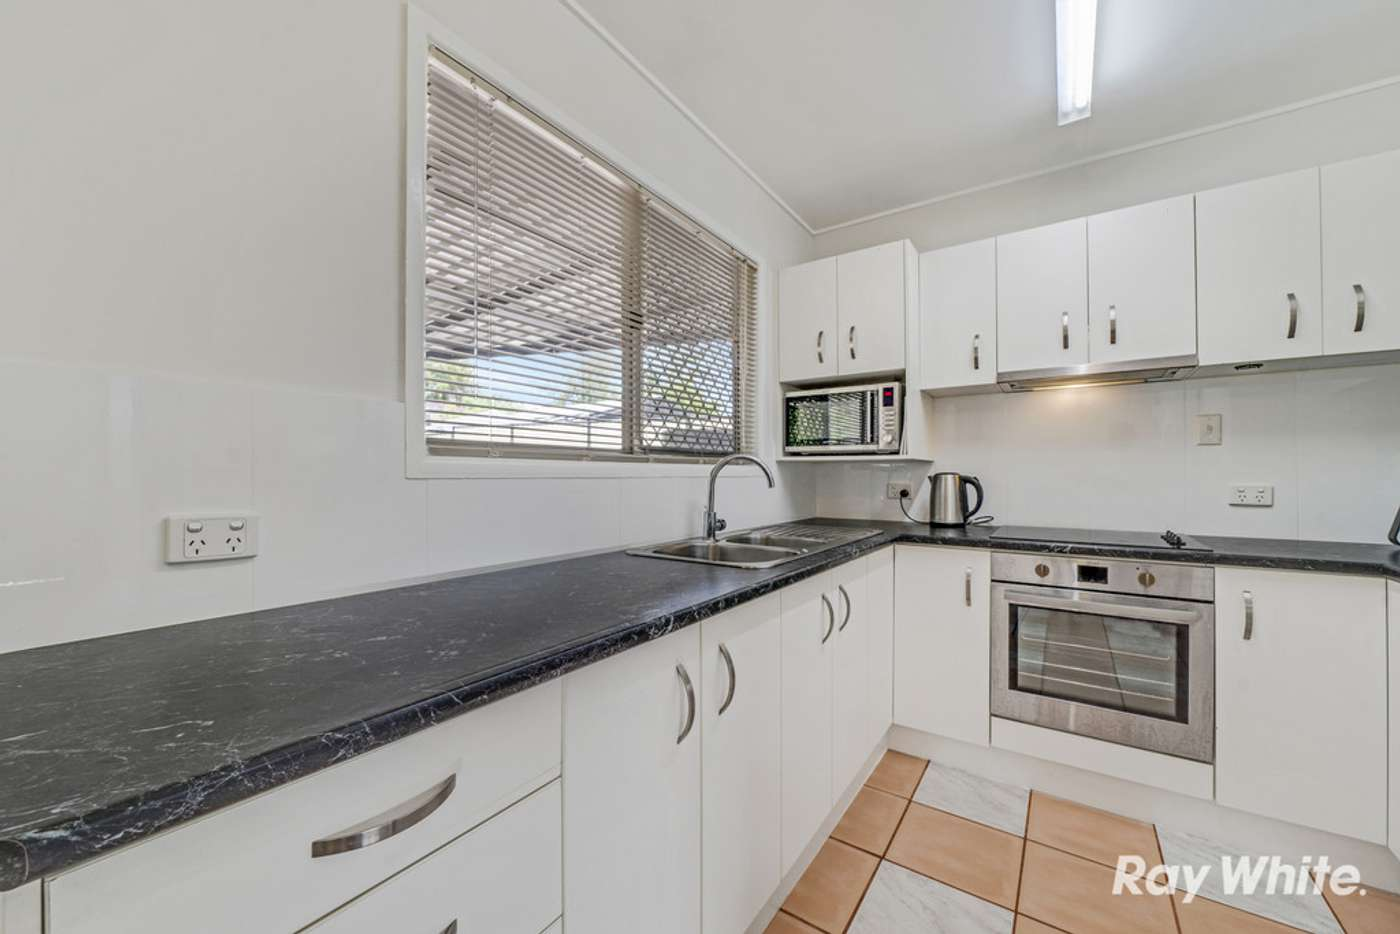 Fifth view of Homely house listing, 743 Browns Plains Road, Marsden QLD 4132